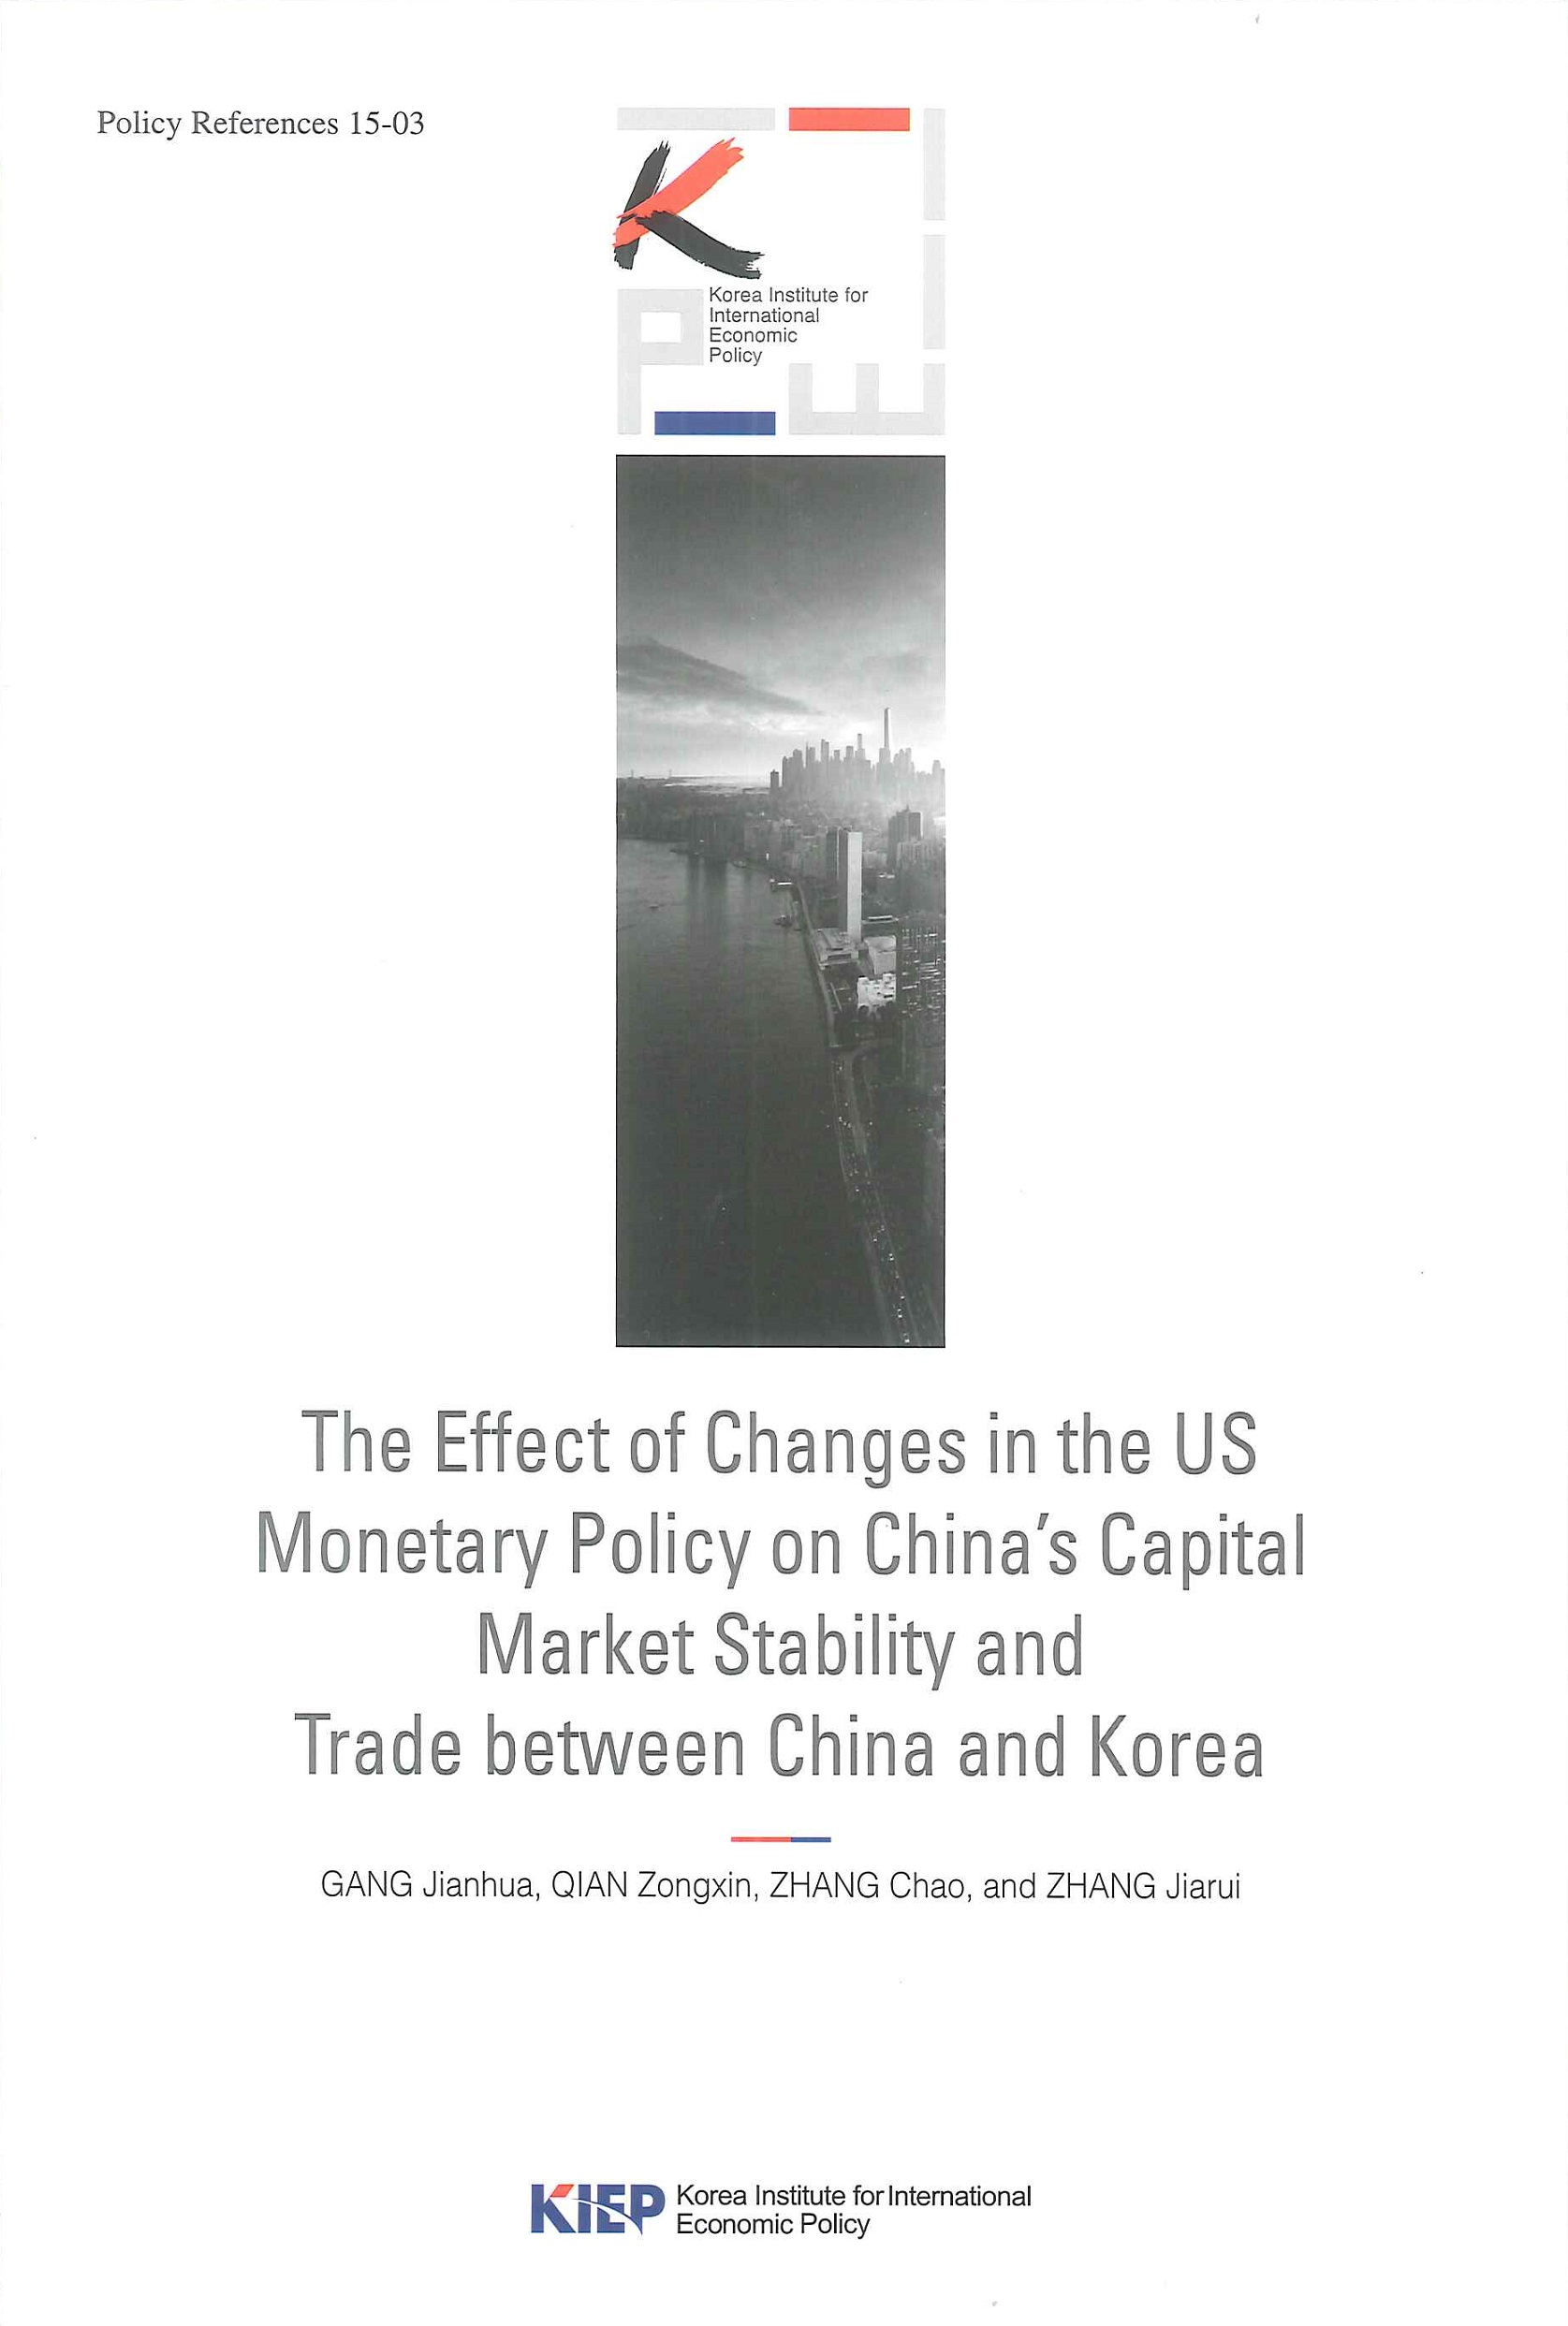 The effect of changes in the US monetary policy on China